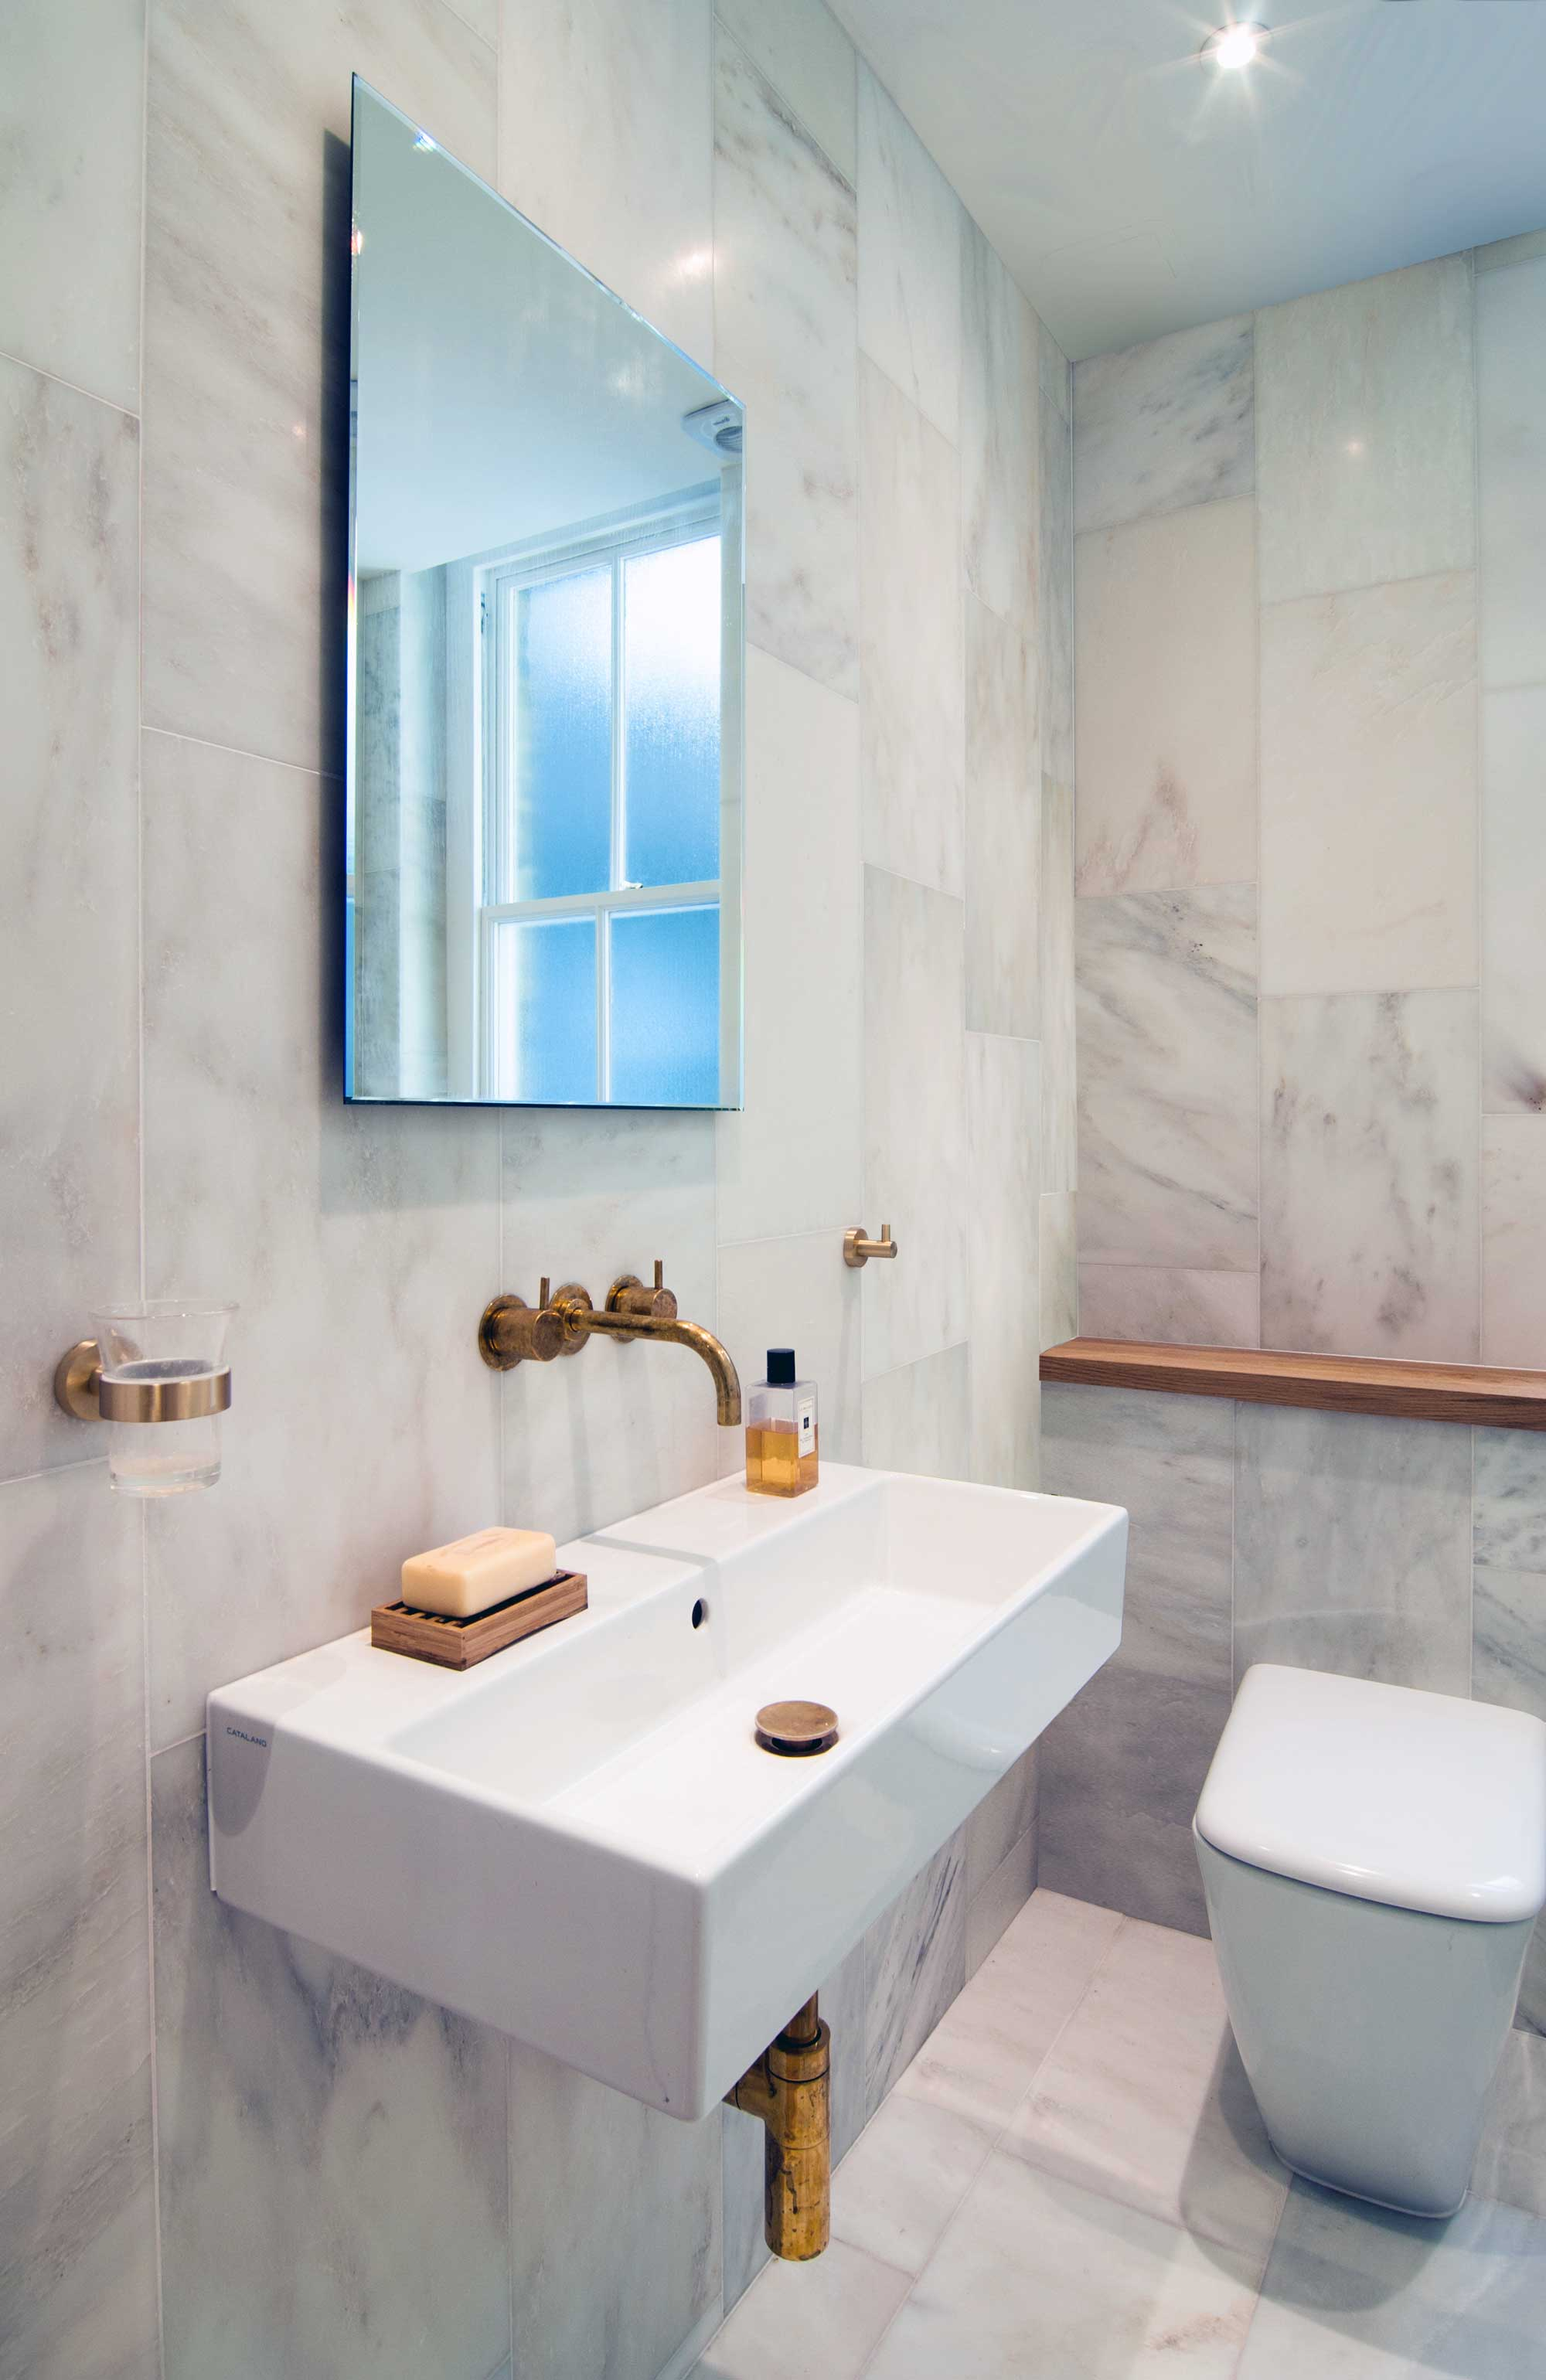 Carrara marble tiles on the walls and floor and Vola brass taps are what make this bathroom so unique and original.